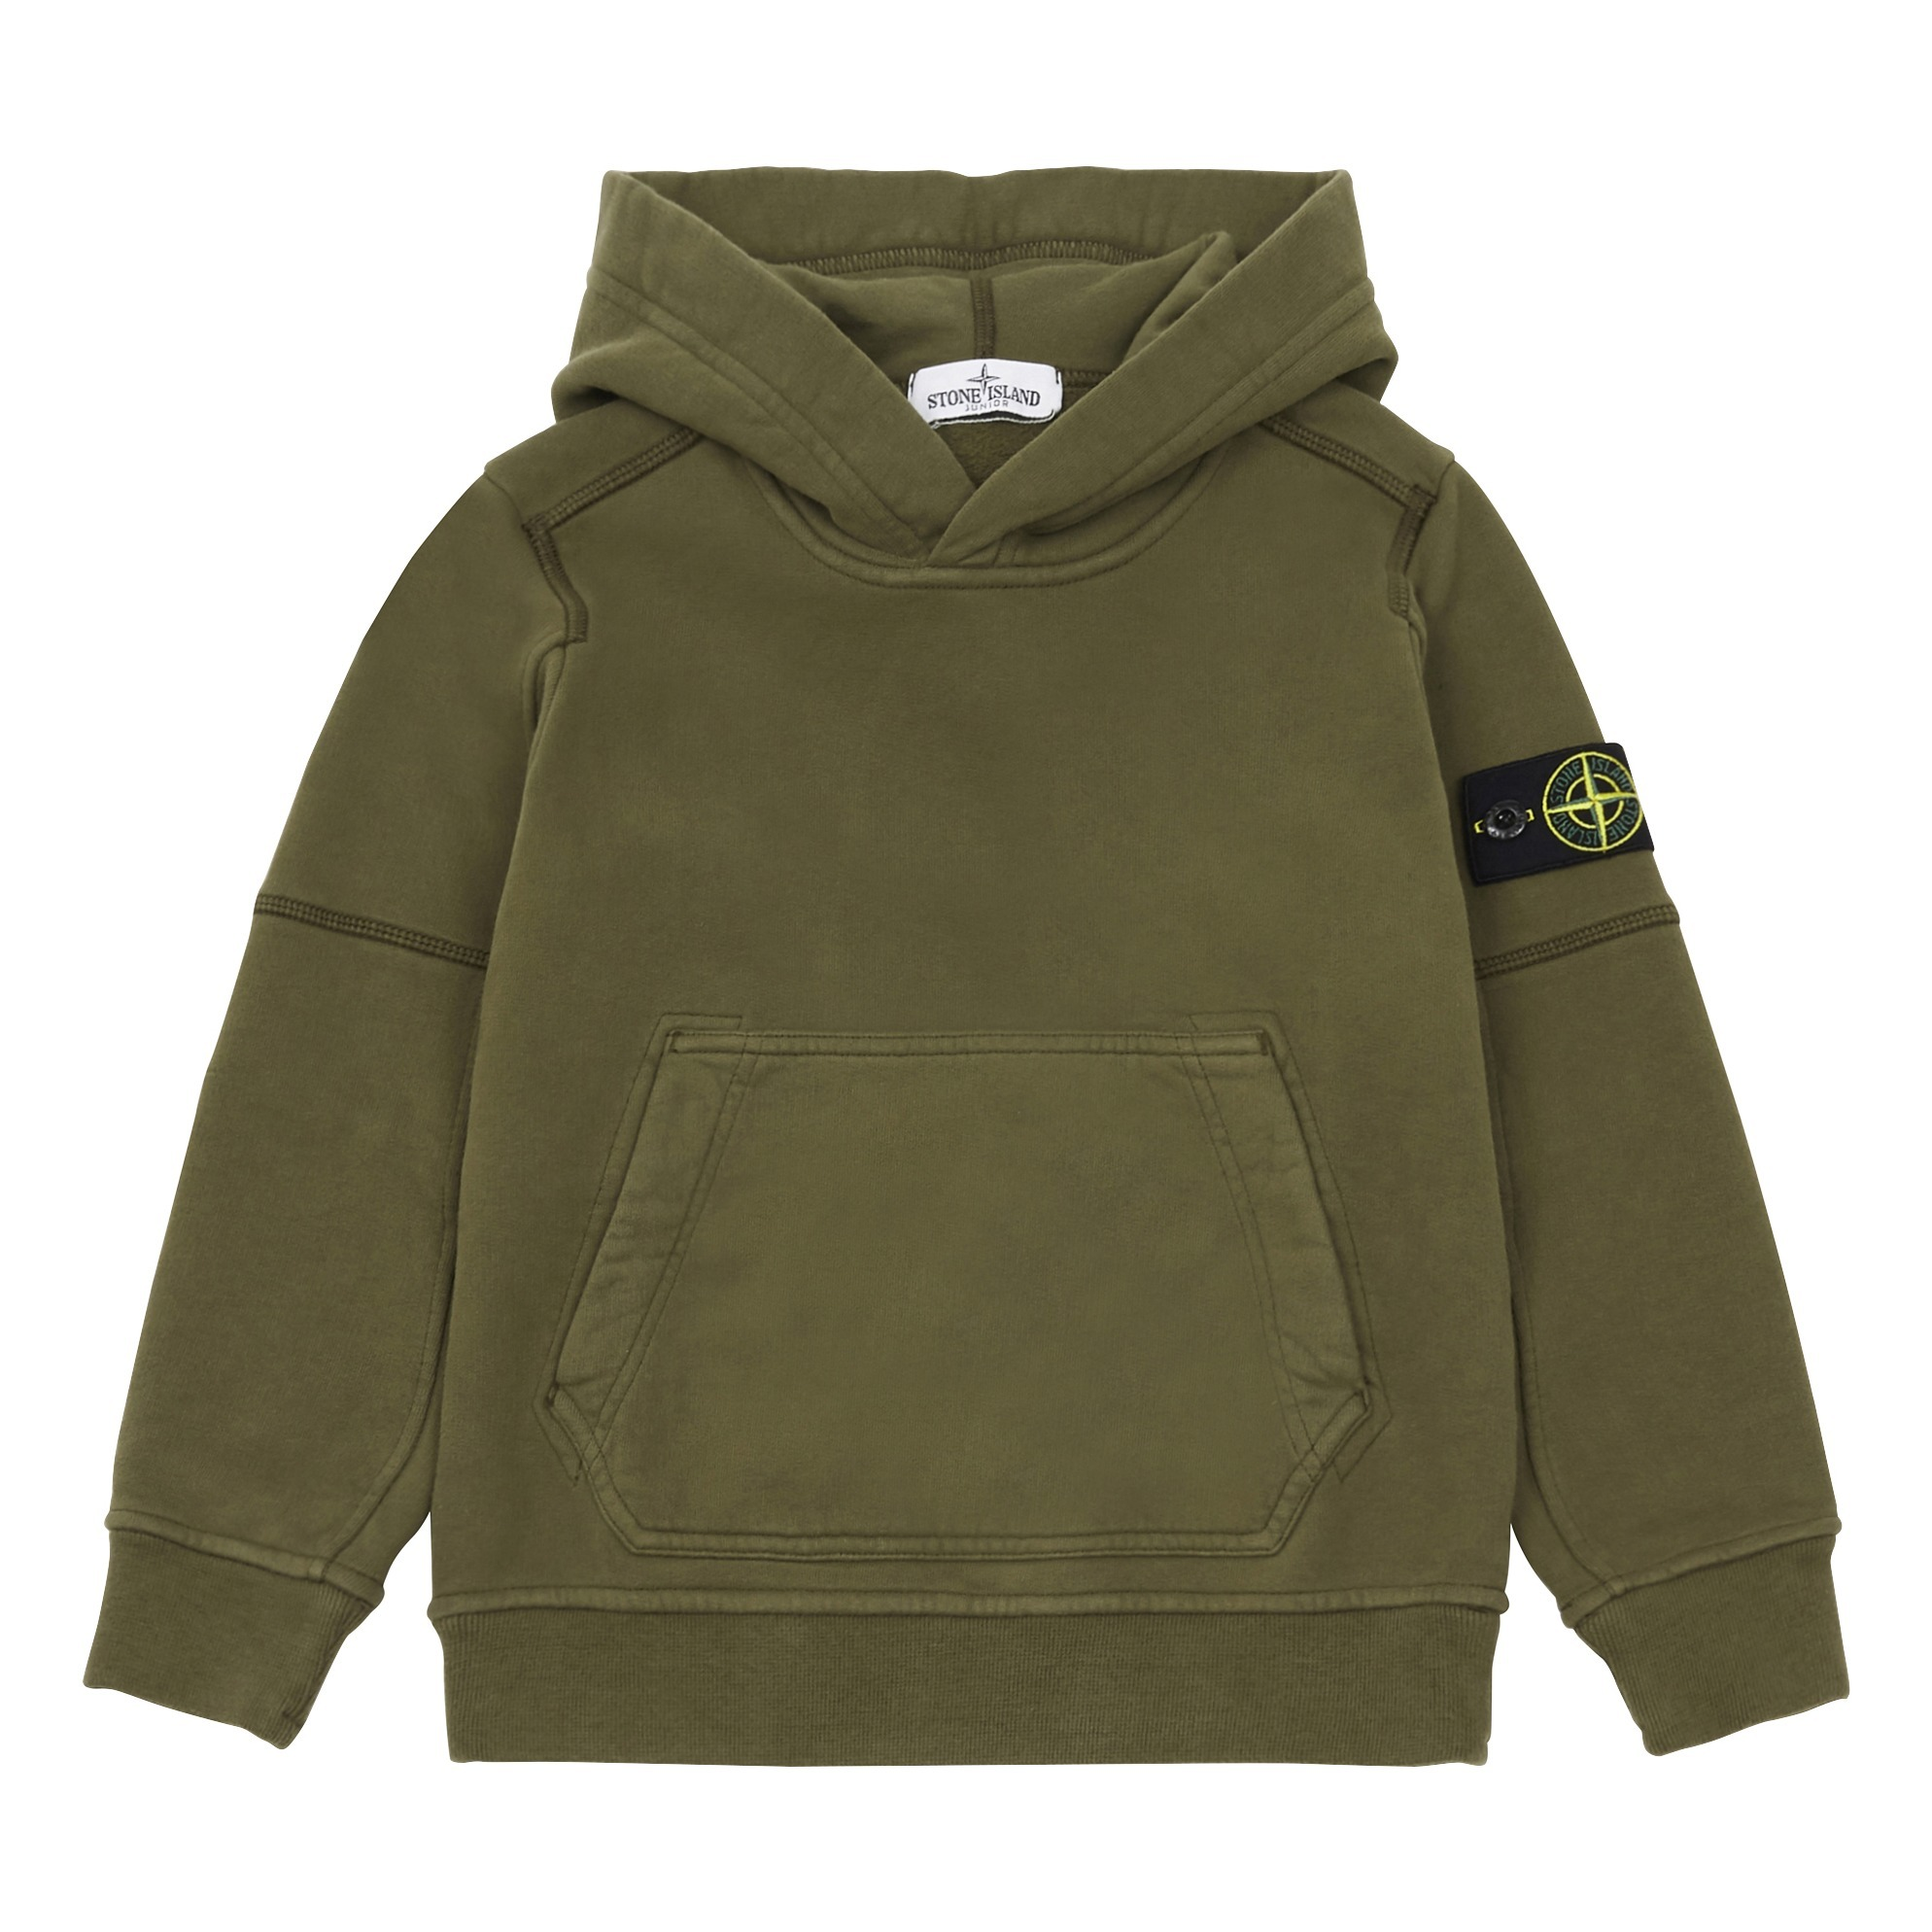 Pullover Teenager Jungen Hoodie Khaki Stone Island Mode Teenager Kind